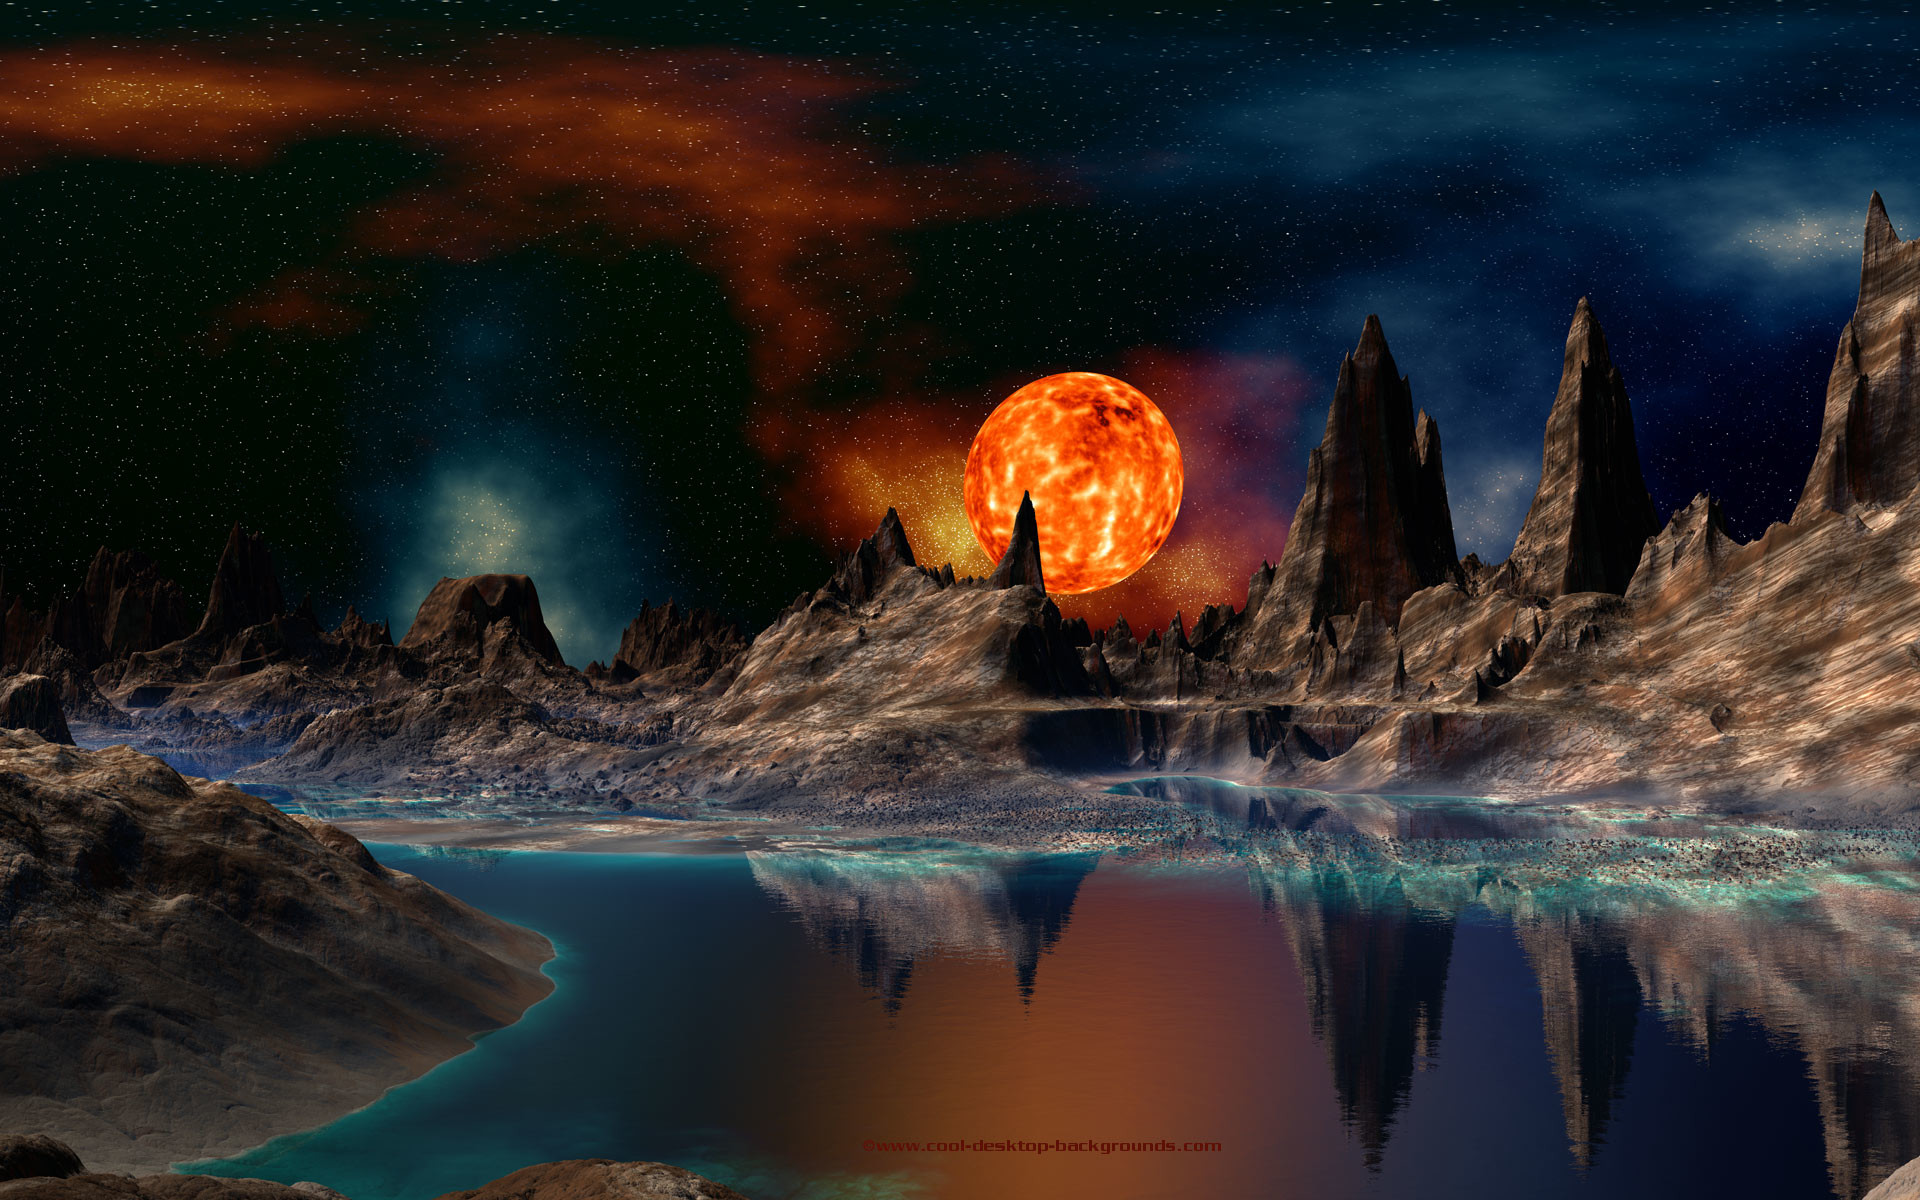 Space background of a red giant sun setting over a rocky alien planet.  Scifi space background for use as your computer's desktop wallpaper.